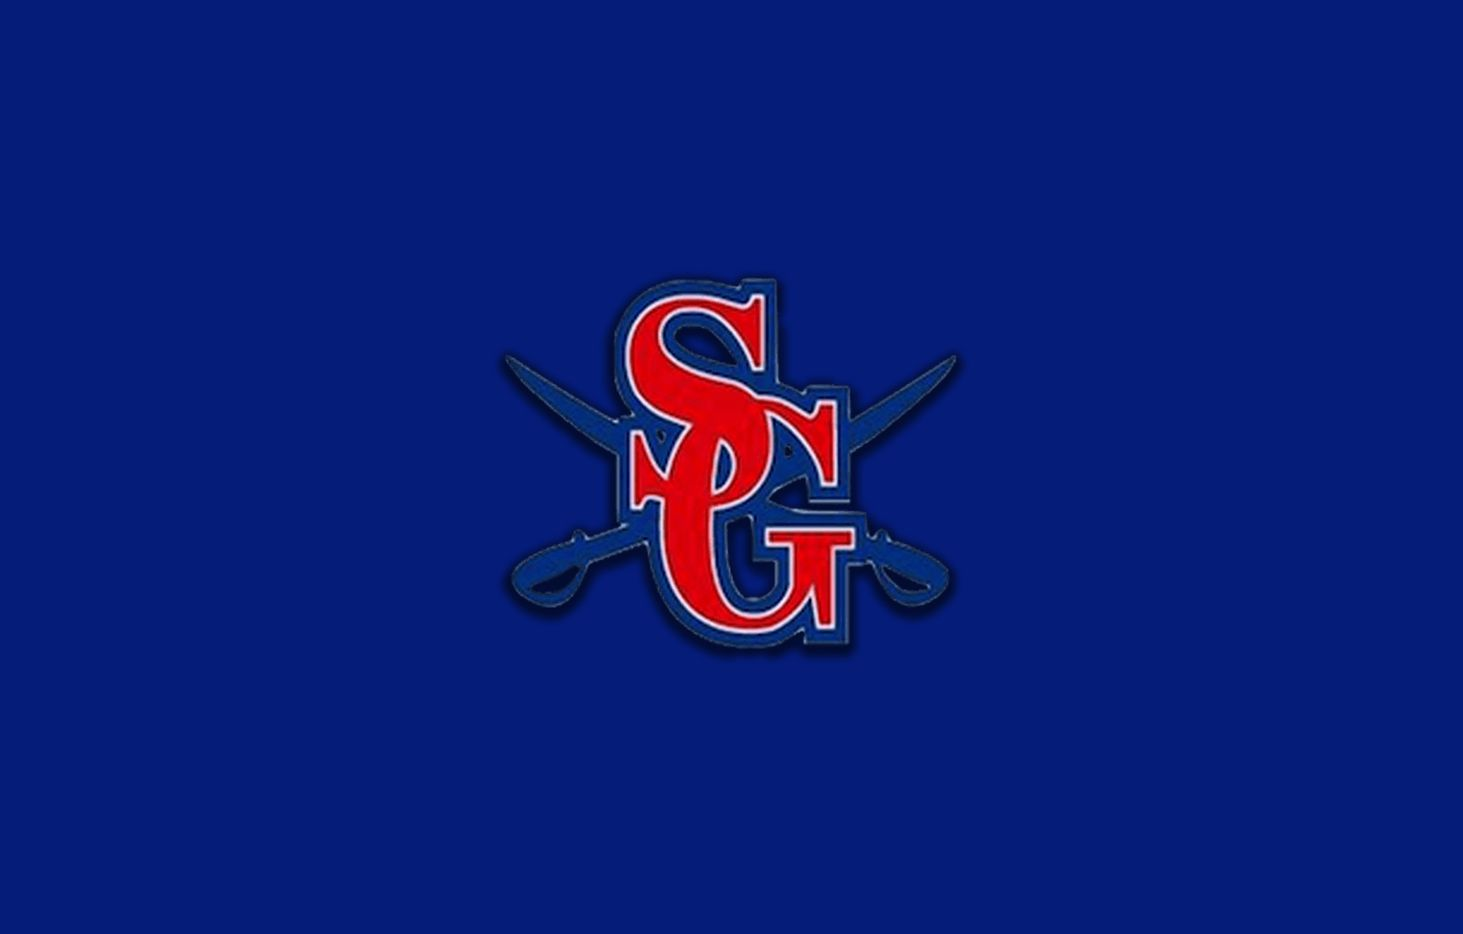 South Garland logo.